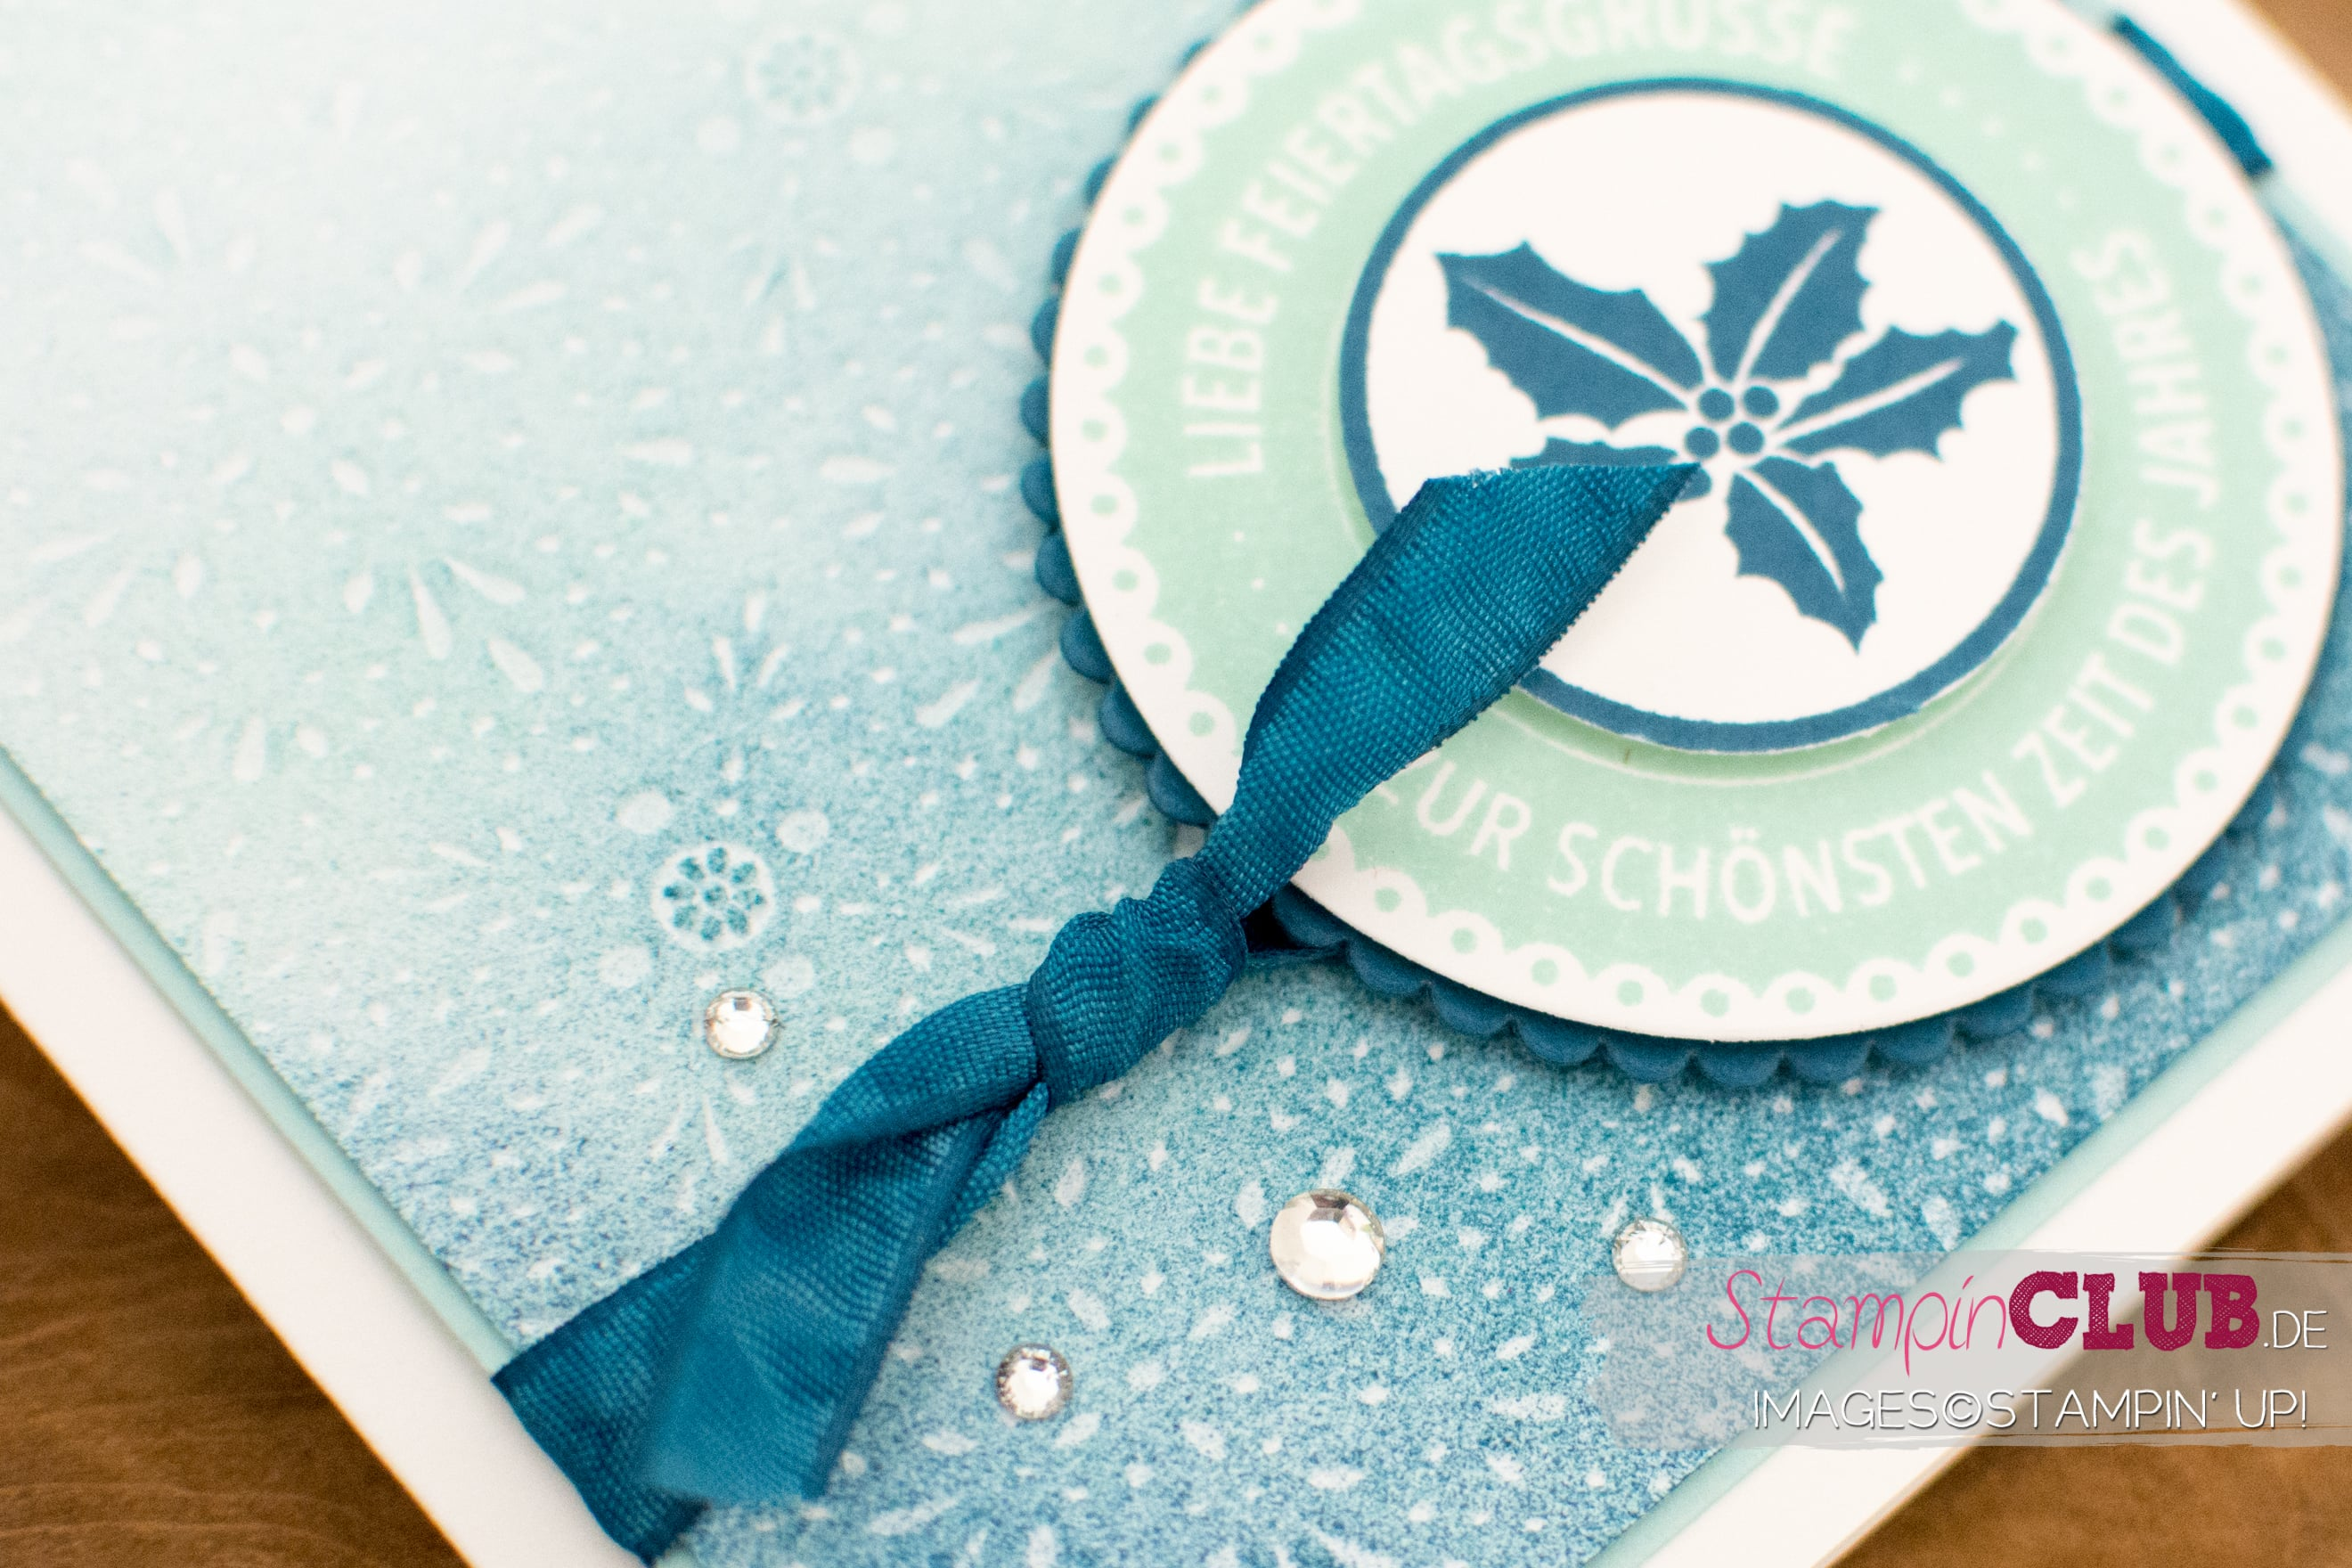 20161023-stampinclub-stampin-up-ombre-technik-froehlich-aufgelegt-holly-jolly-layers_-4